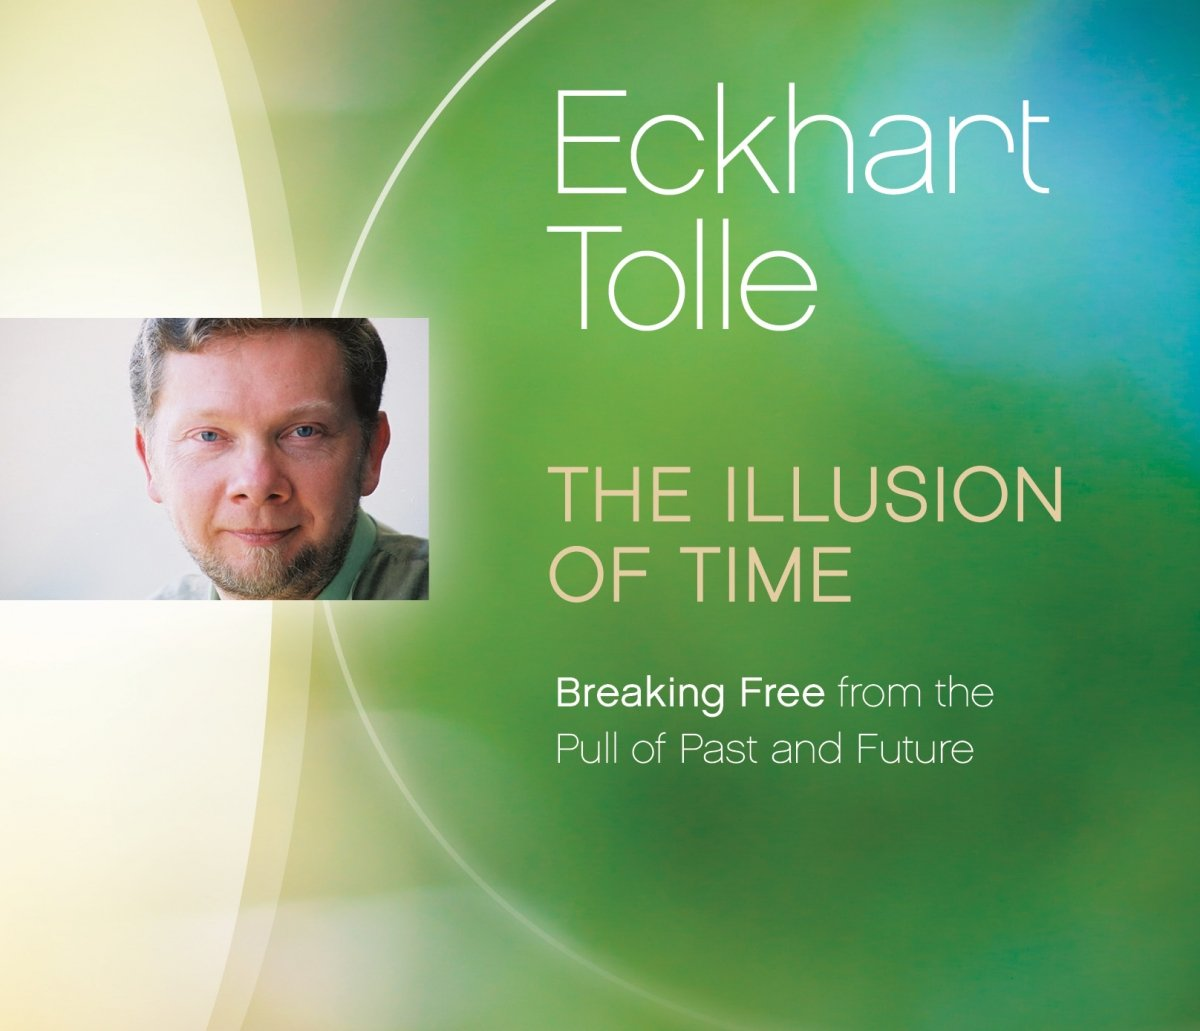 The Illusion of Time: Breaking Free from the Pull of Past and Future by SOUNDS TRUE RECORDS (Image #1)